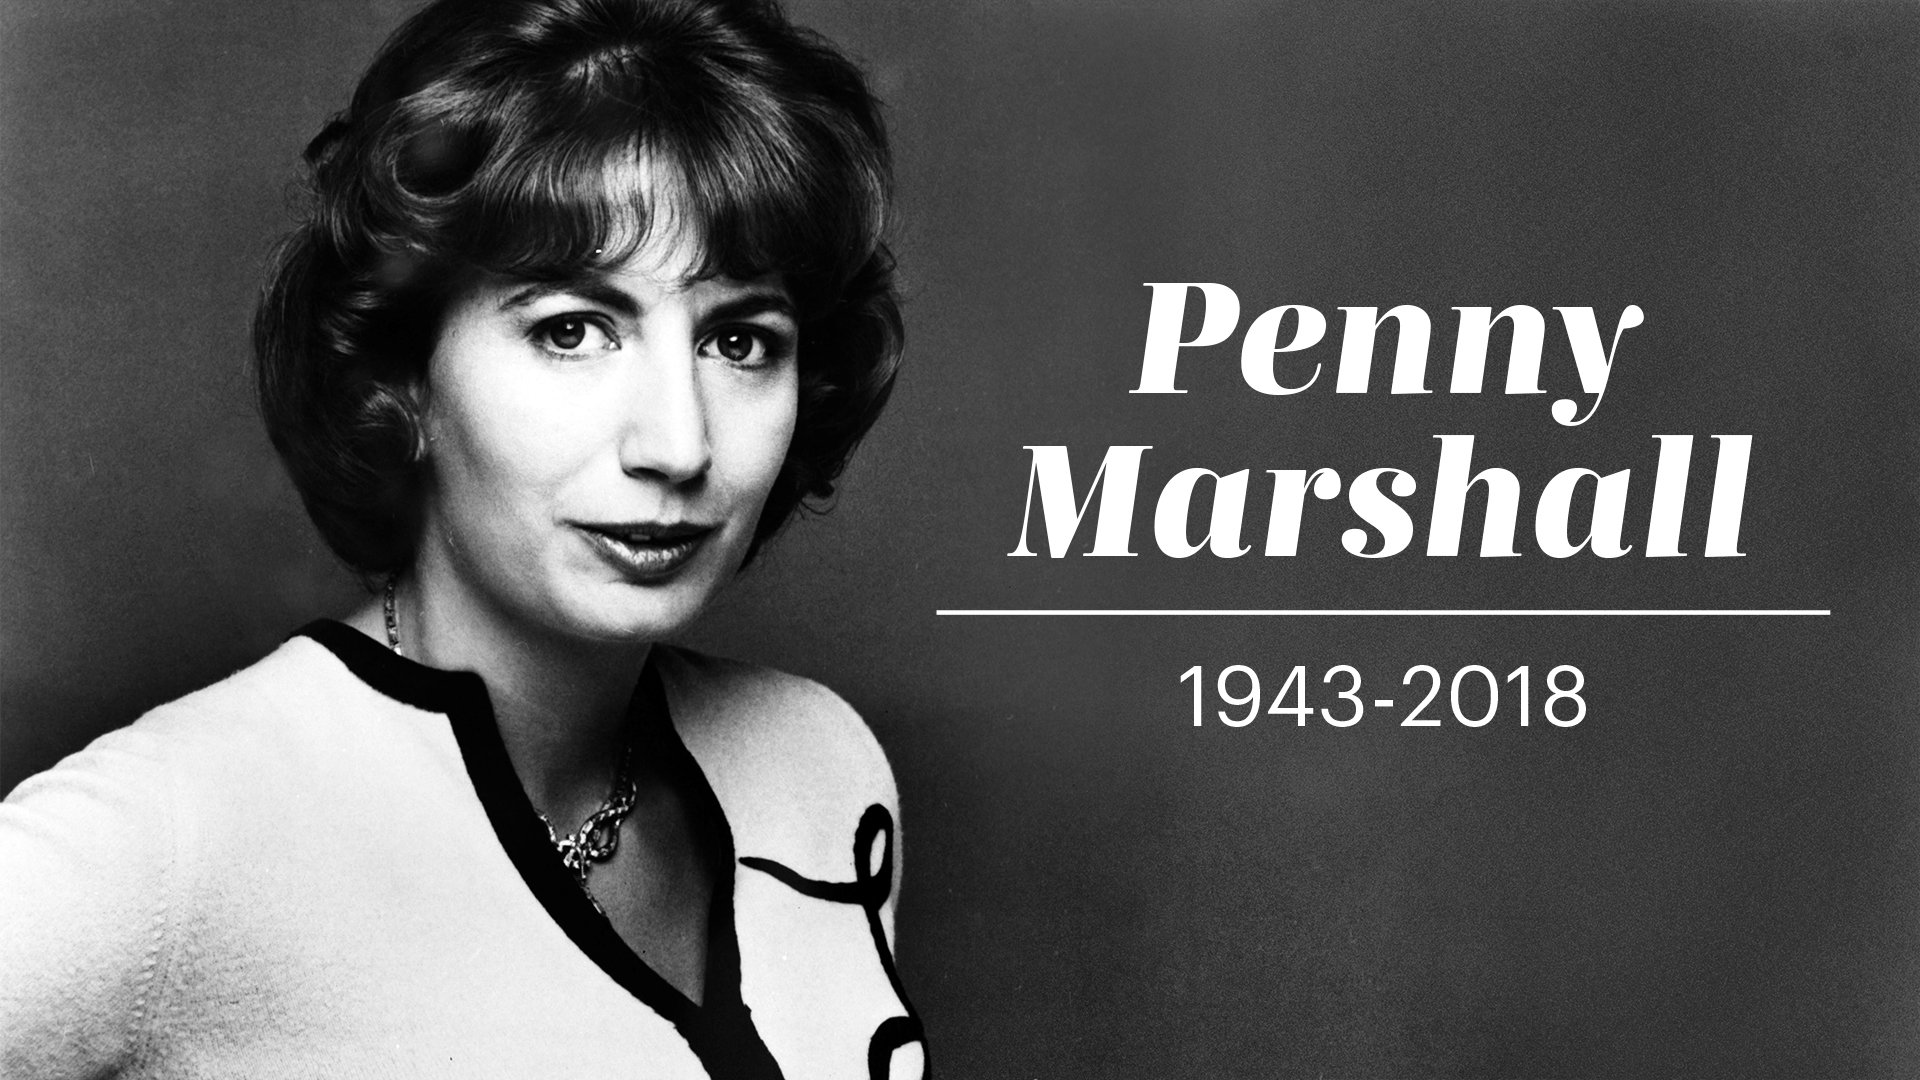 RIP Penny Marshall https://t.co/4b5iYsP4AW https://t.co/ot6W1GYJjg